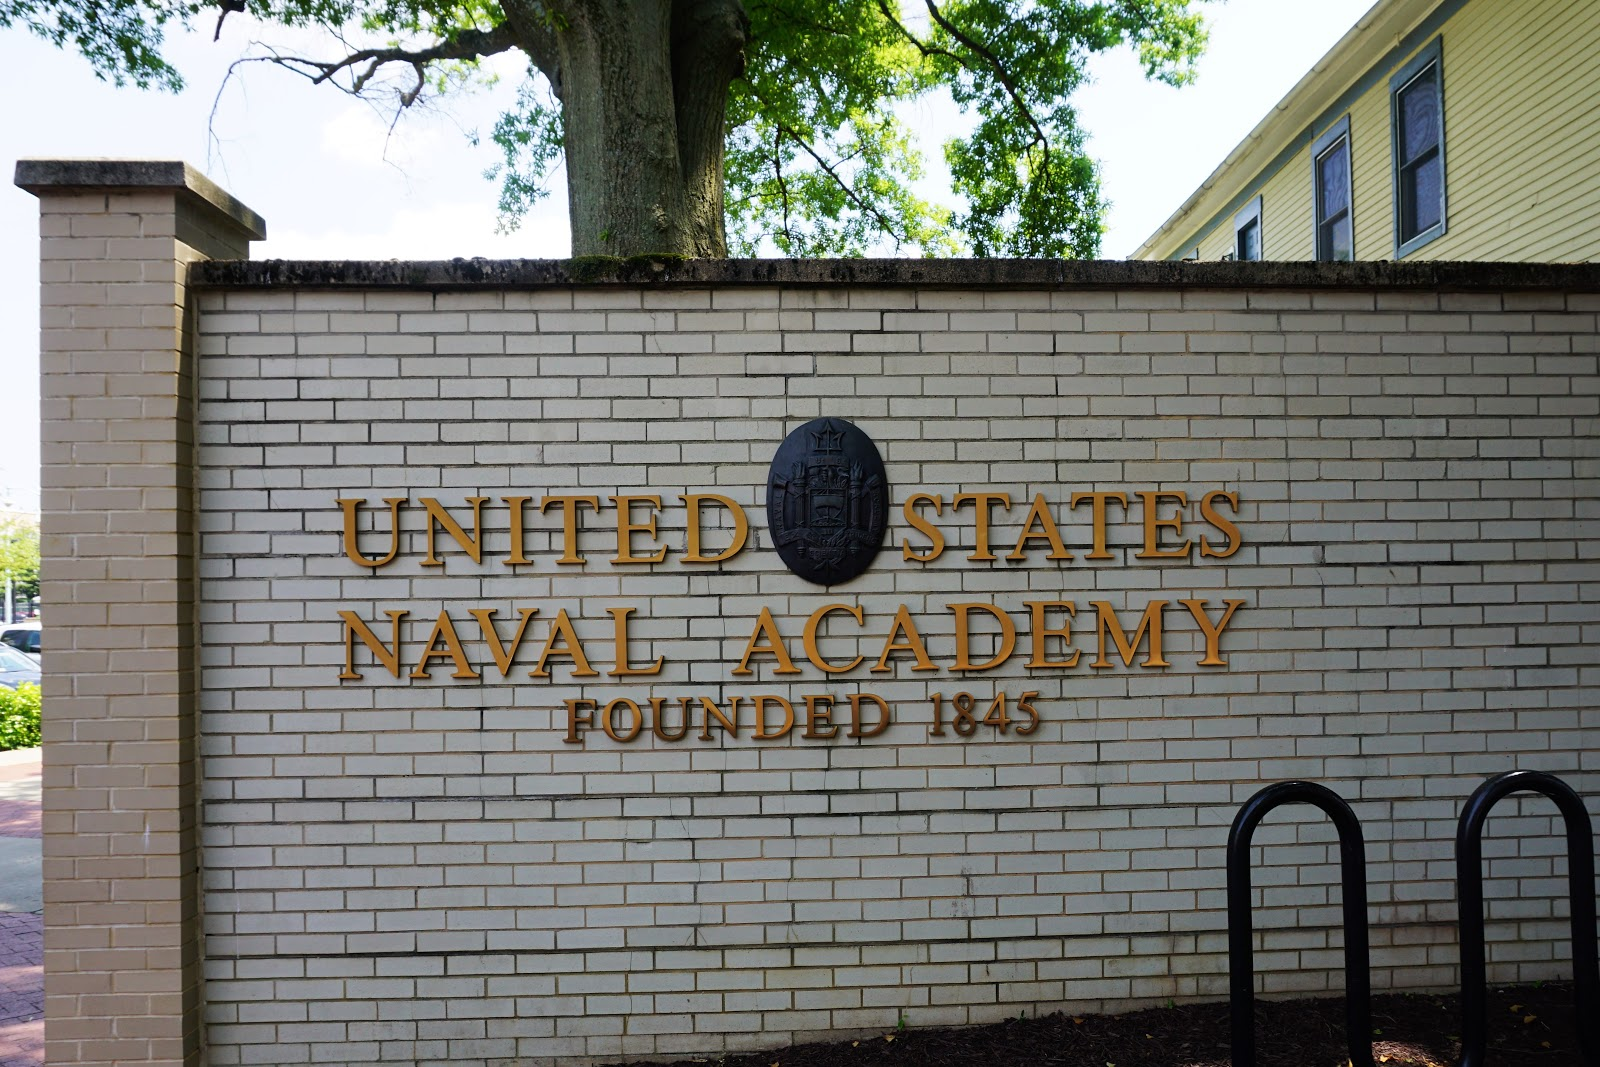 for the united states naval academy founded here in 1845 in addition to visiting state capitals we also like to visit major universities